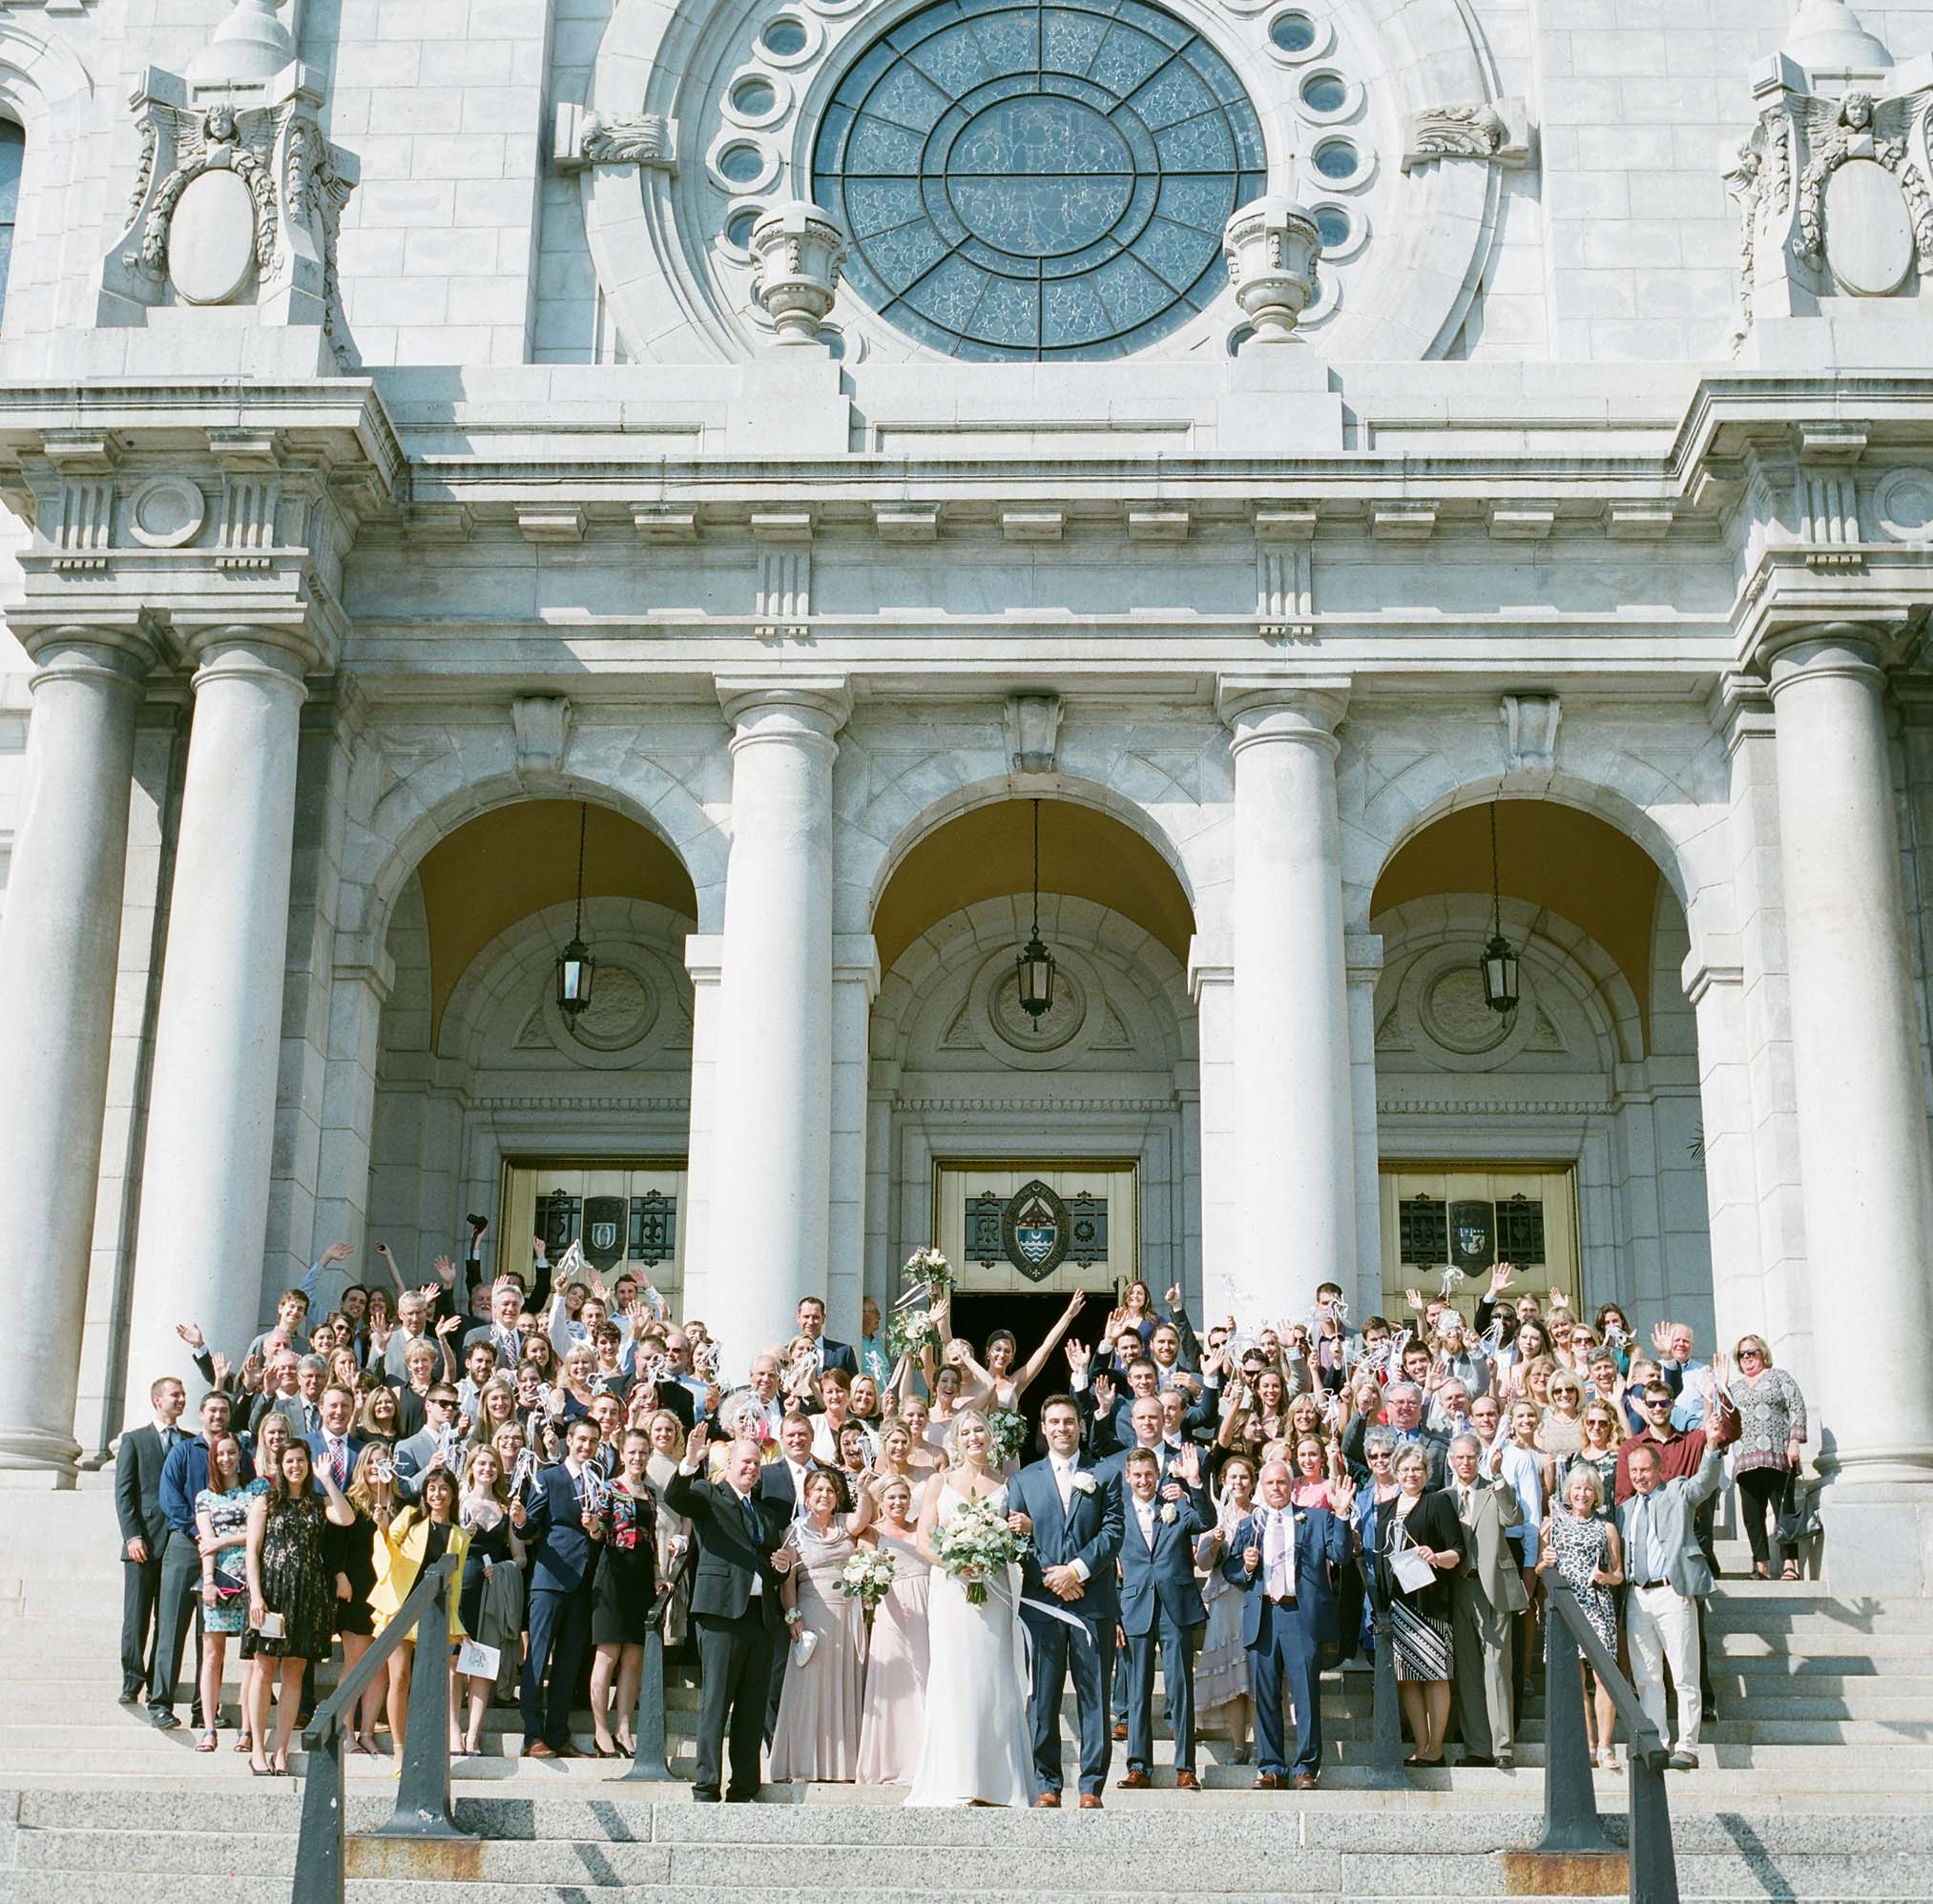 The basilica of saint mary wedding wedding party on the stairs